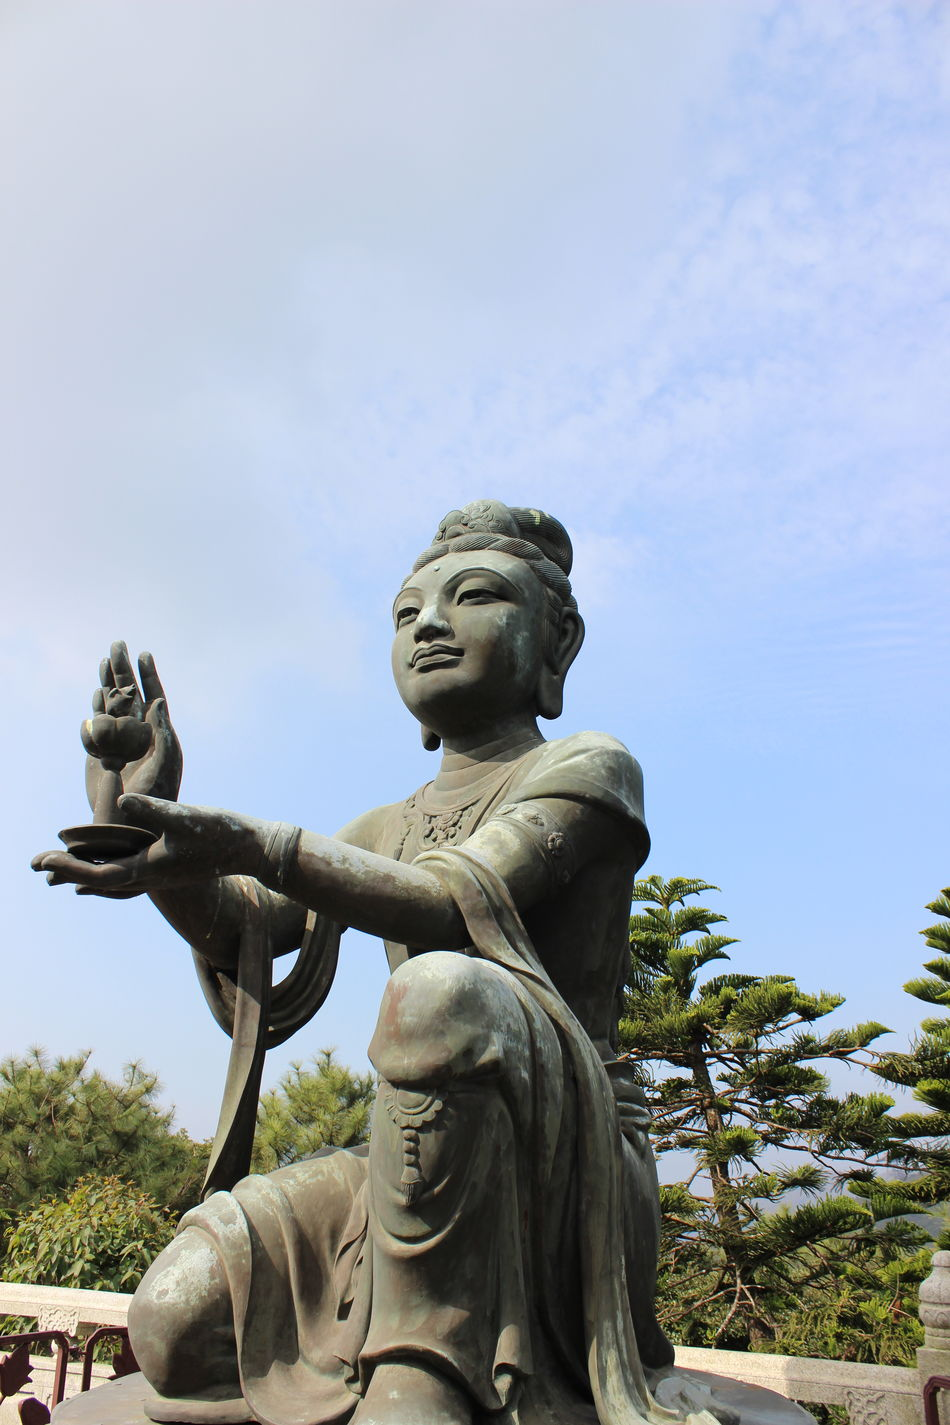 Statue Sculpture No People Anthropomorphic Religion Outdoors Sky Day Blue Cloud - Sky Travel Photography Travel Destinations HongKong Architecture Beauty In Nature Tian Tan Buddha (Giant Buddha) 天壇大佛 Place Of Worship